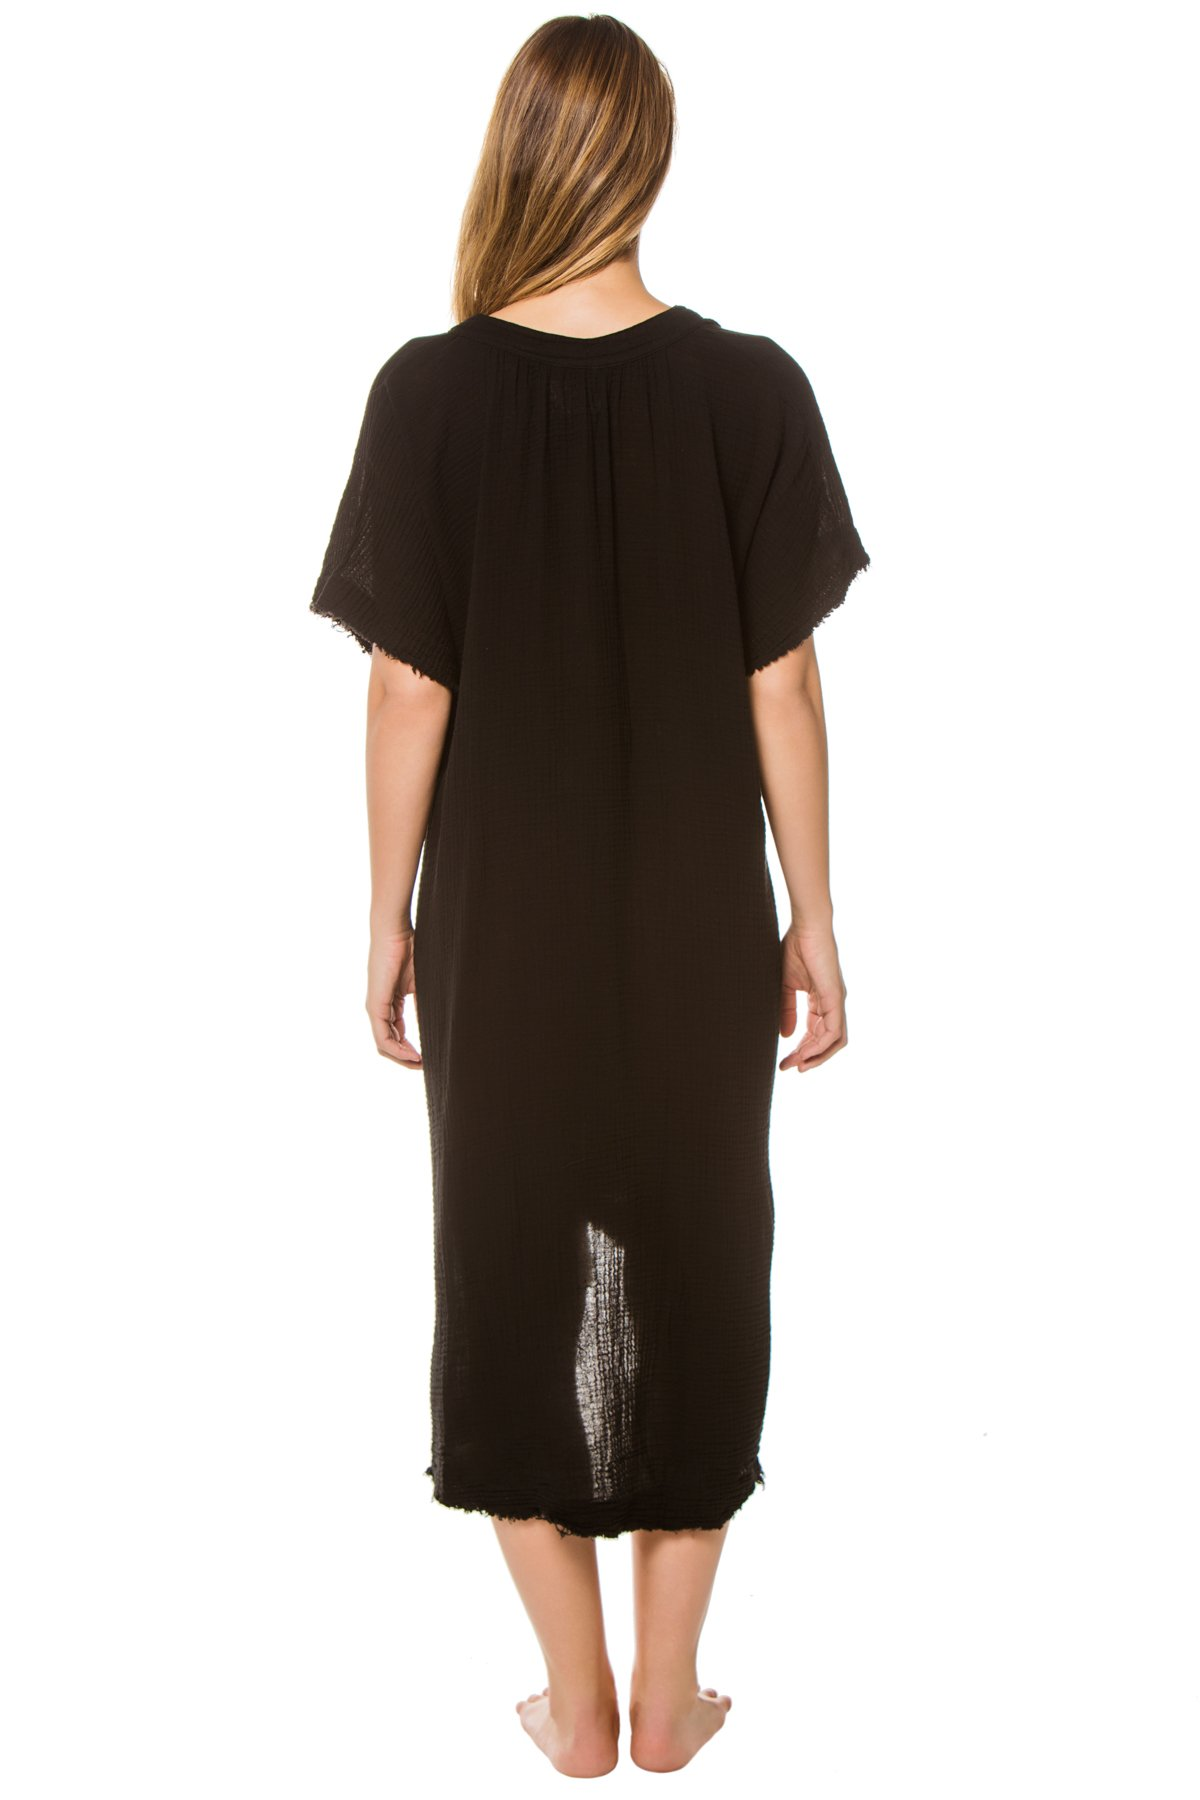 Tunisia Caftan - Black 2